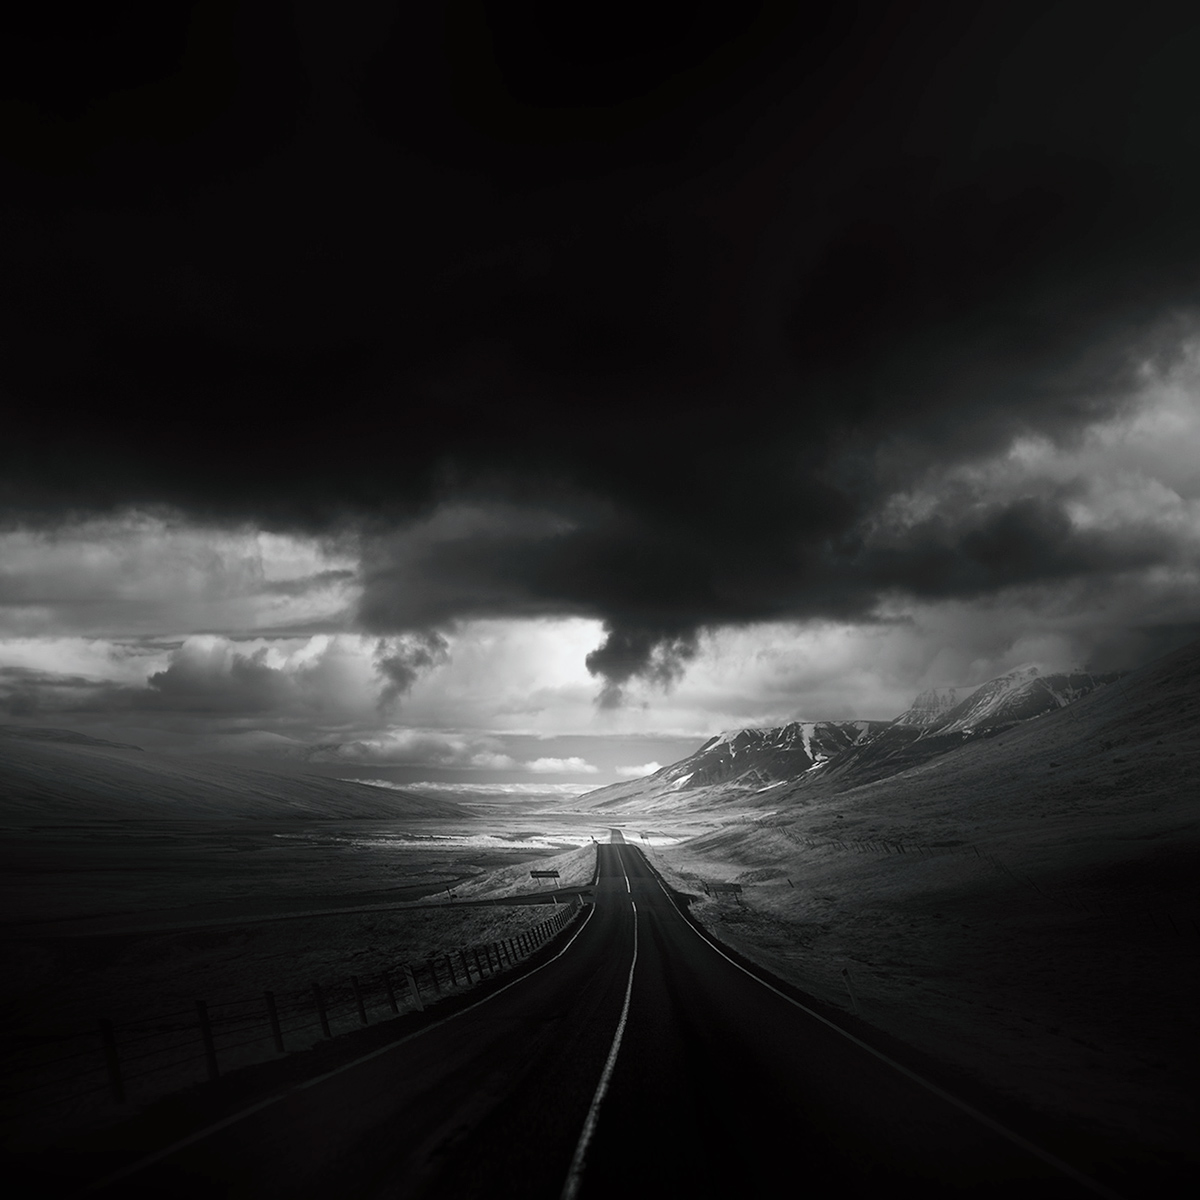 Fine Art Landscape Photography by Andy Lee | Orms Connect Photographic Blog, South Africa